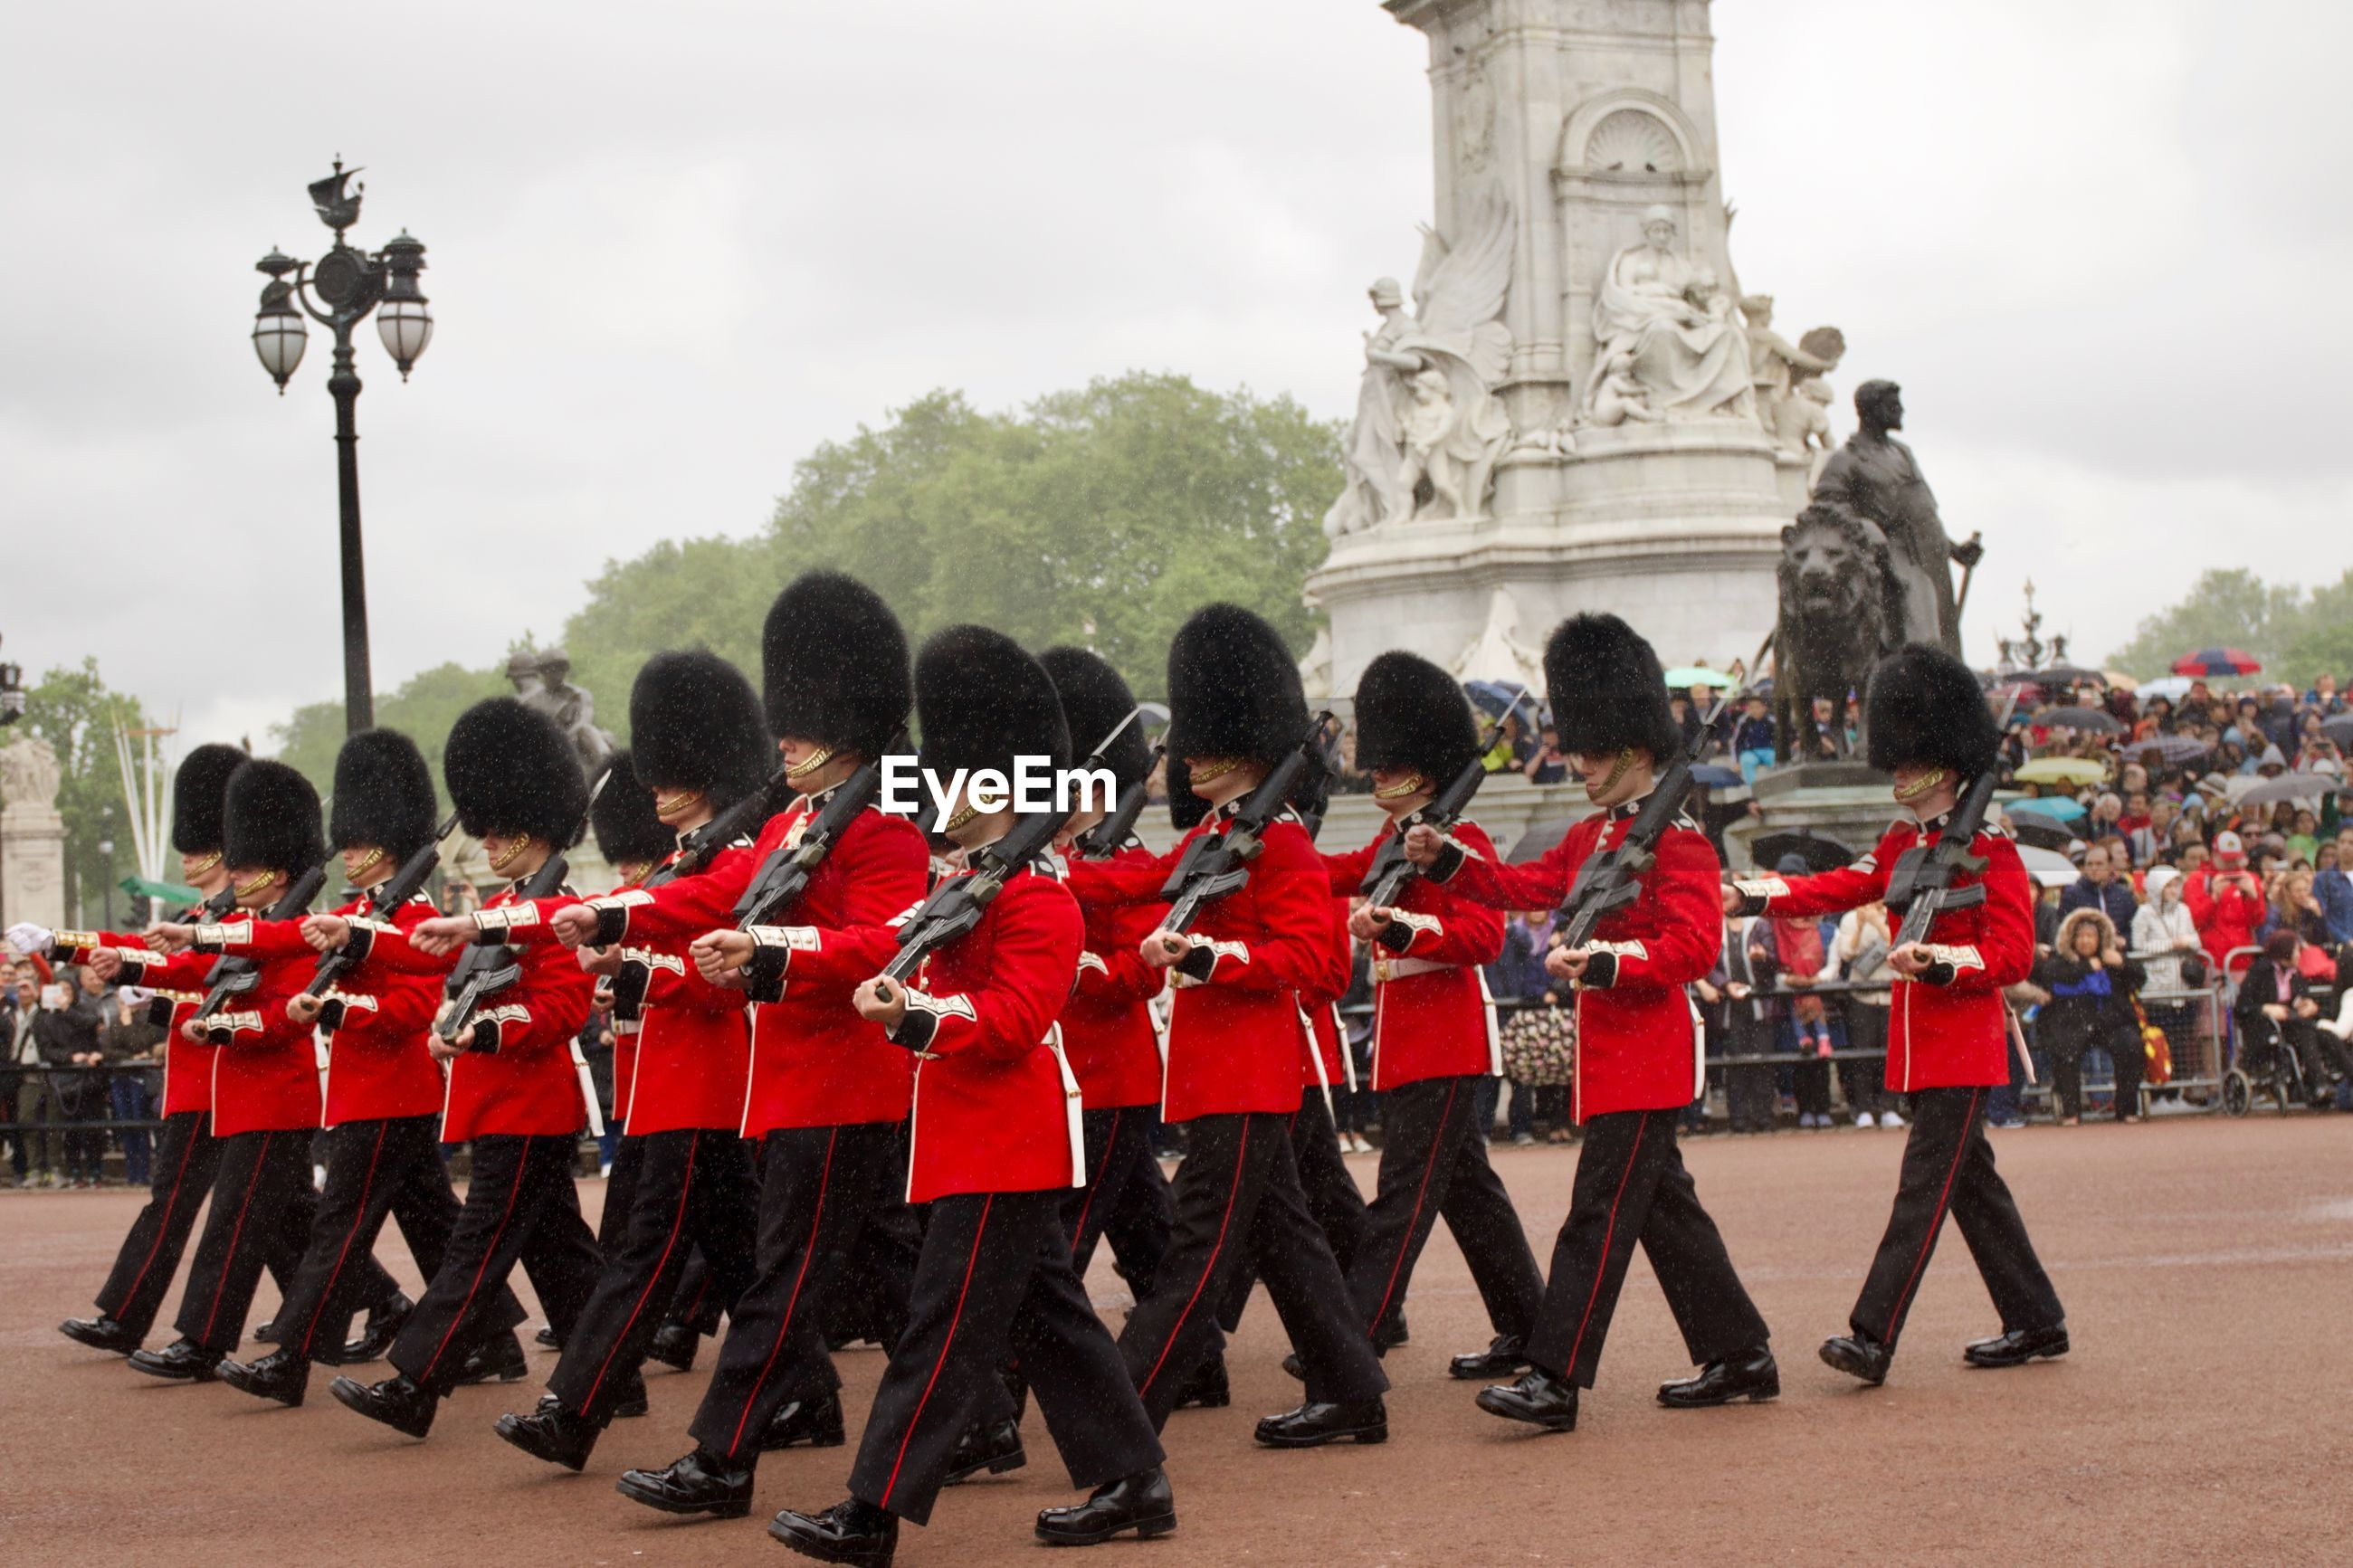 Military parade at buckingham palace